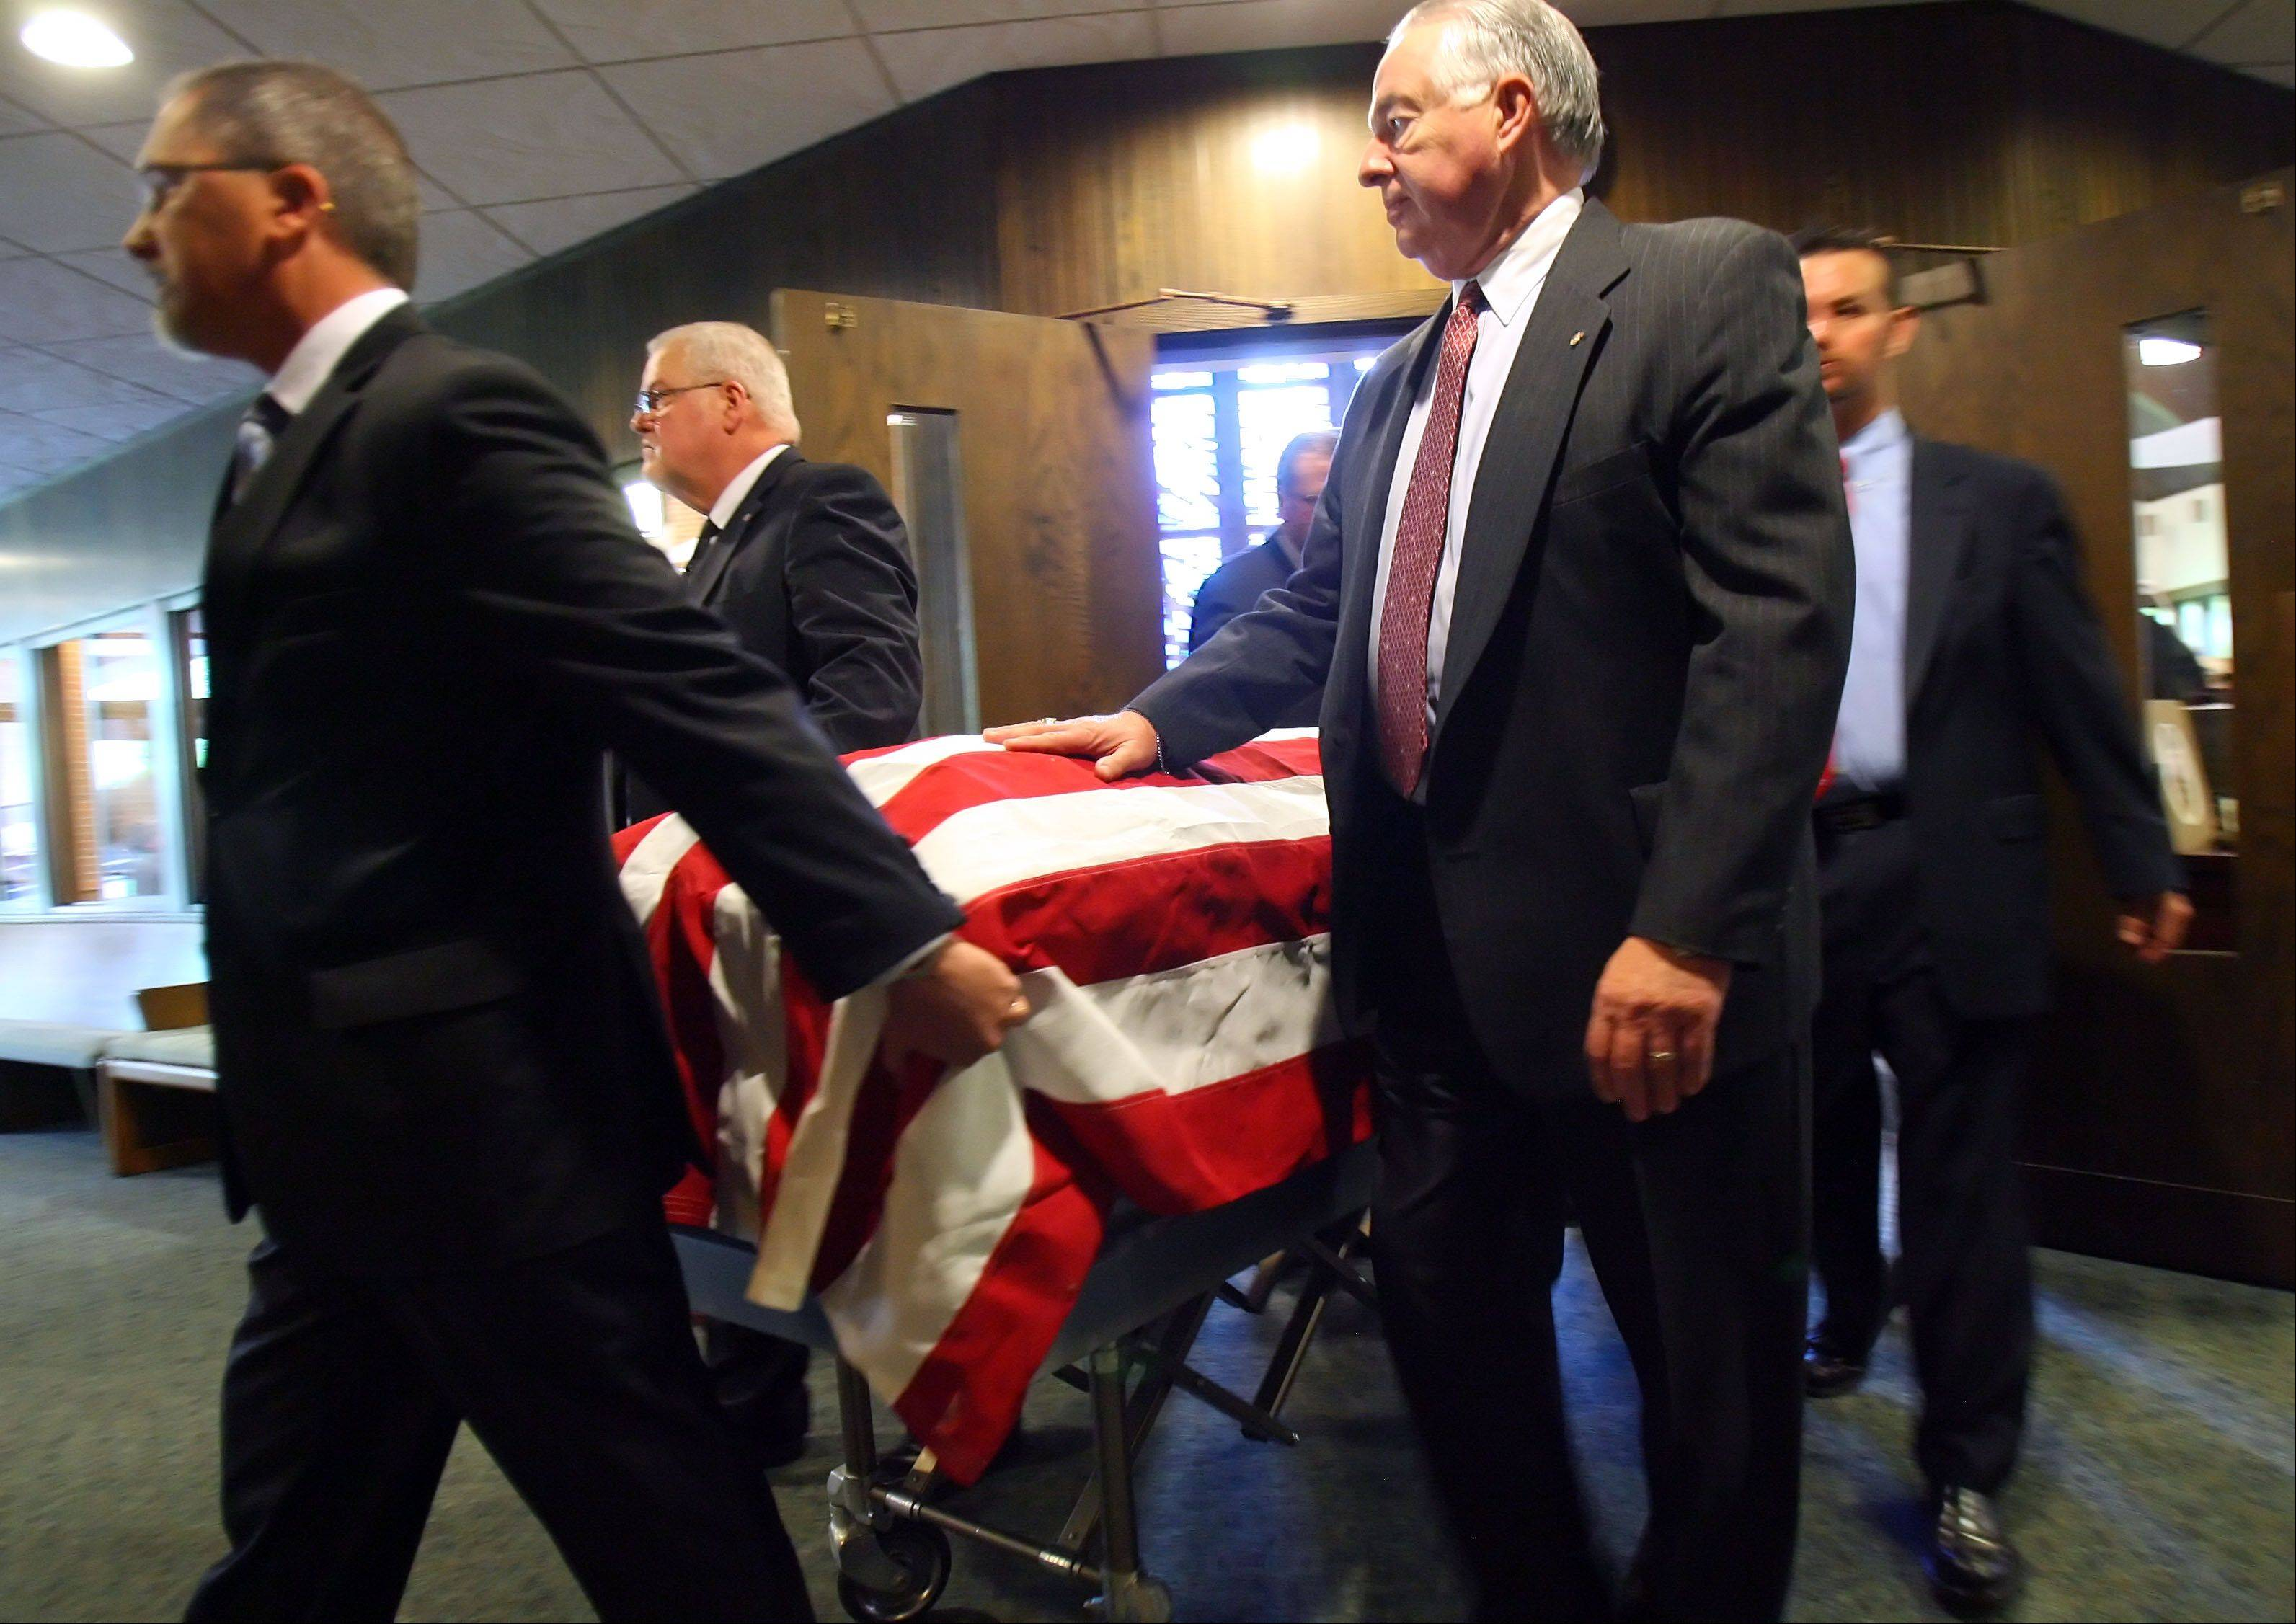 Pallbearers wheel out the flag-draped casket of Spencer Loomis during his funeral Thursday at St. Peter United Church of Christ in Lake Zurich.